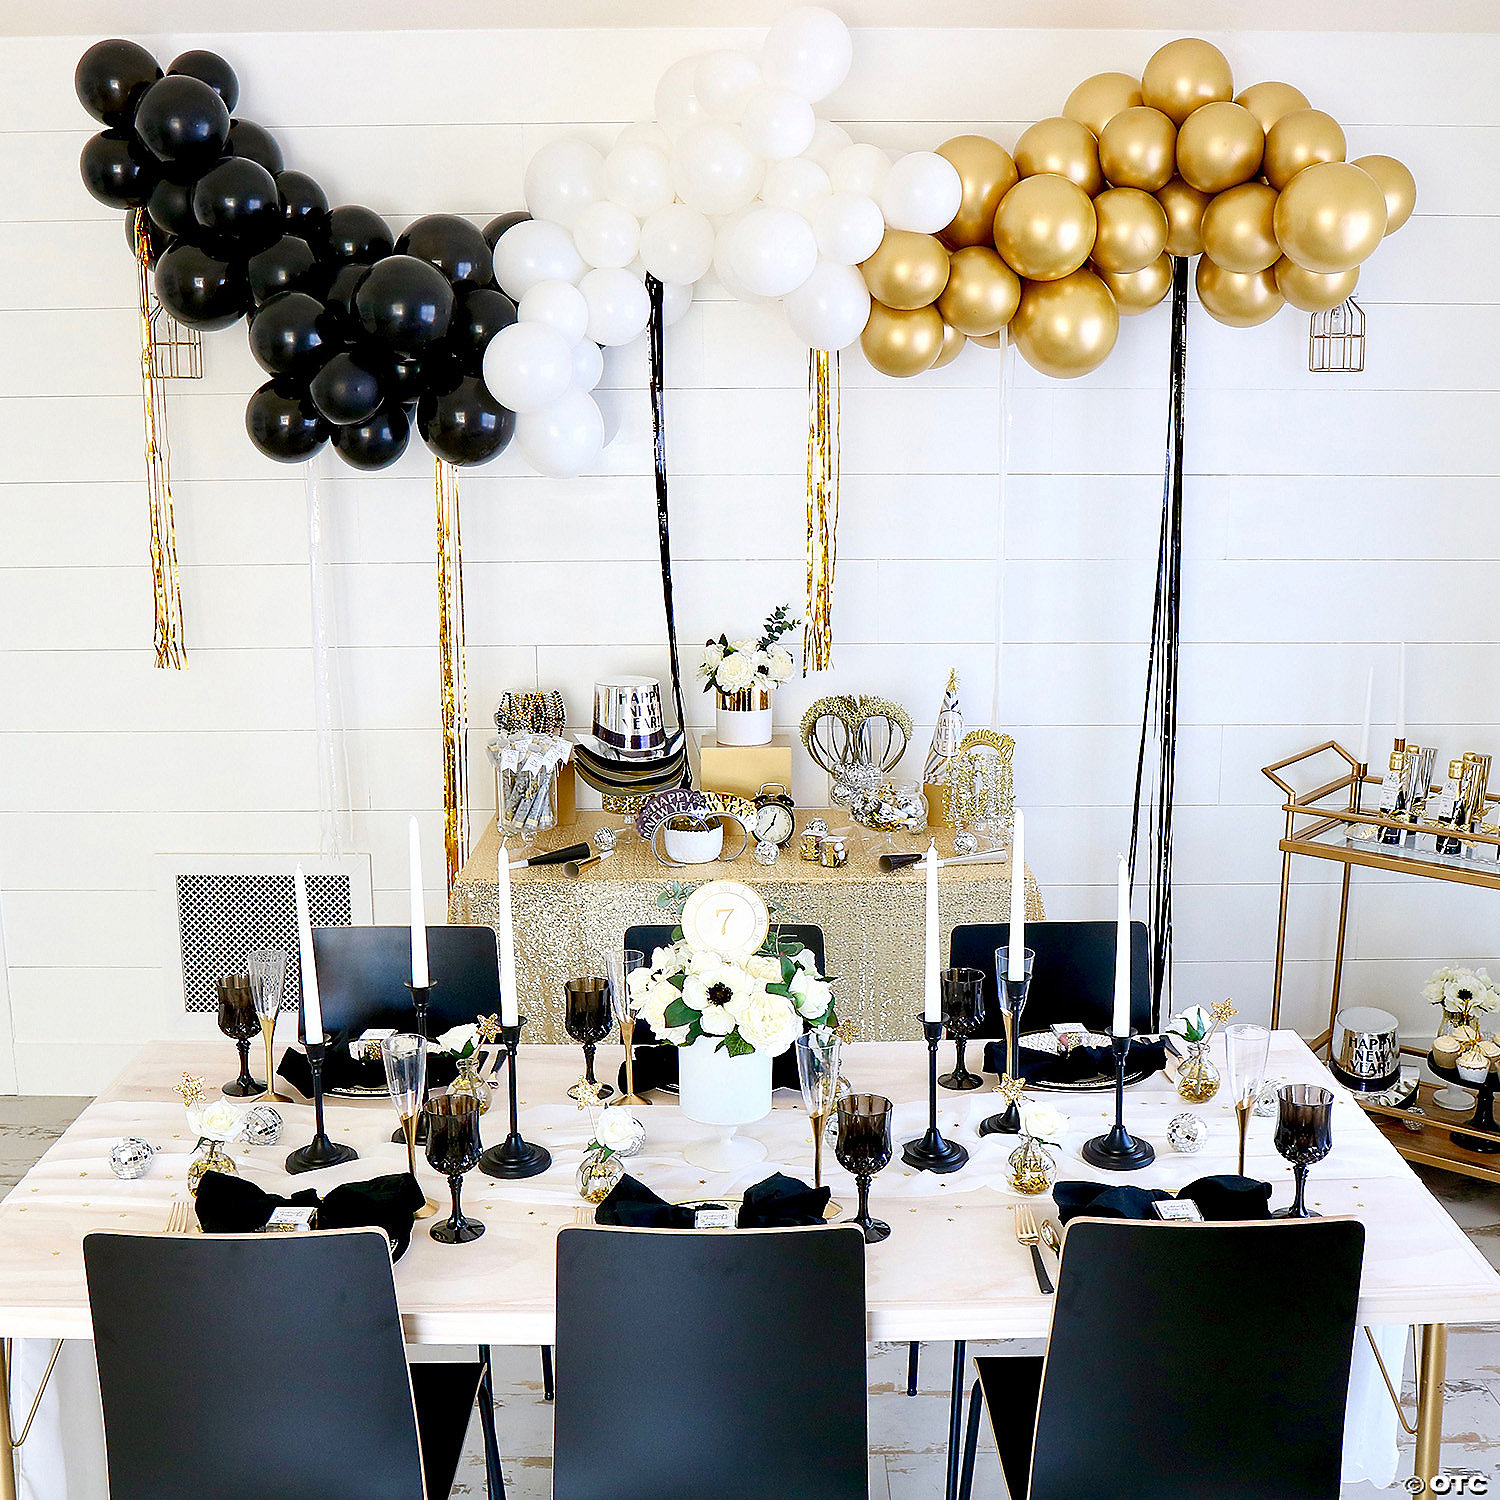 25 Ft Black White Gold Balloon Garland Kit With Air Pump